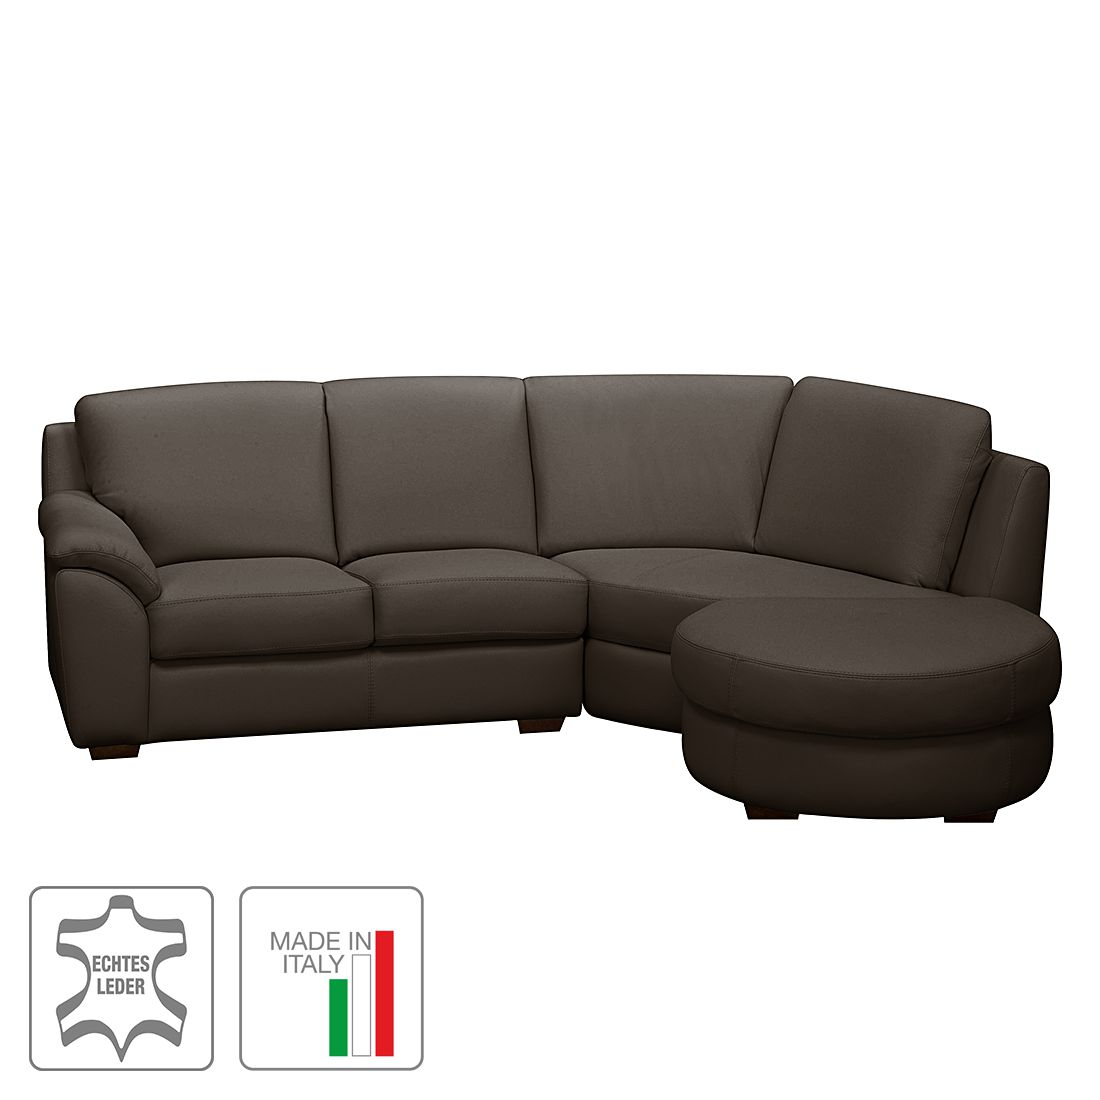 ecksofa curell echtleder ottomane davorstehend rechts dunkelbraun trend italiano online. Black Bedroom Furniture Sets. Home Design Ideas